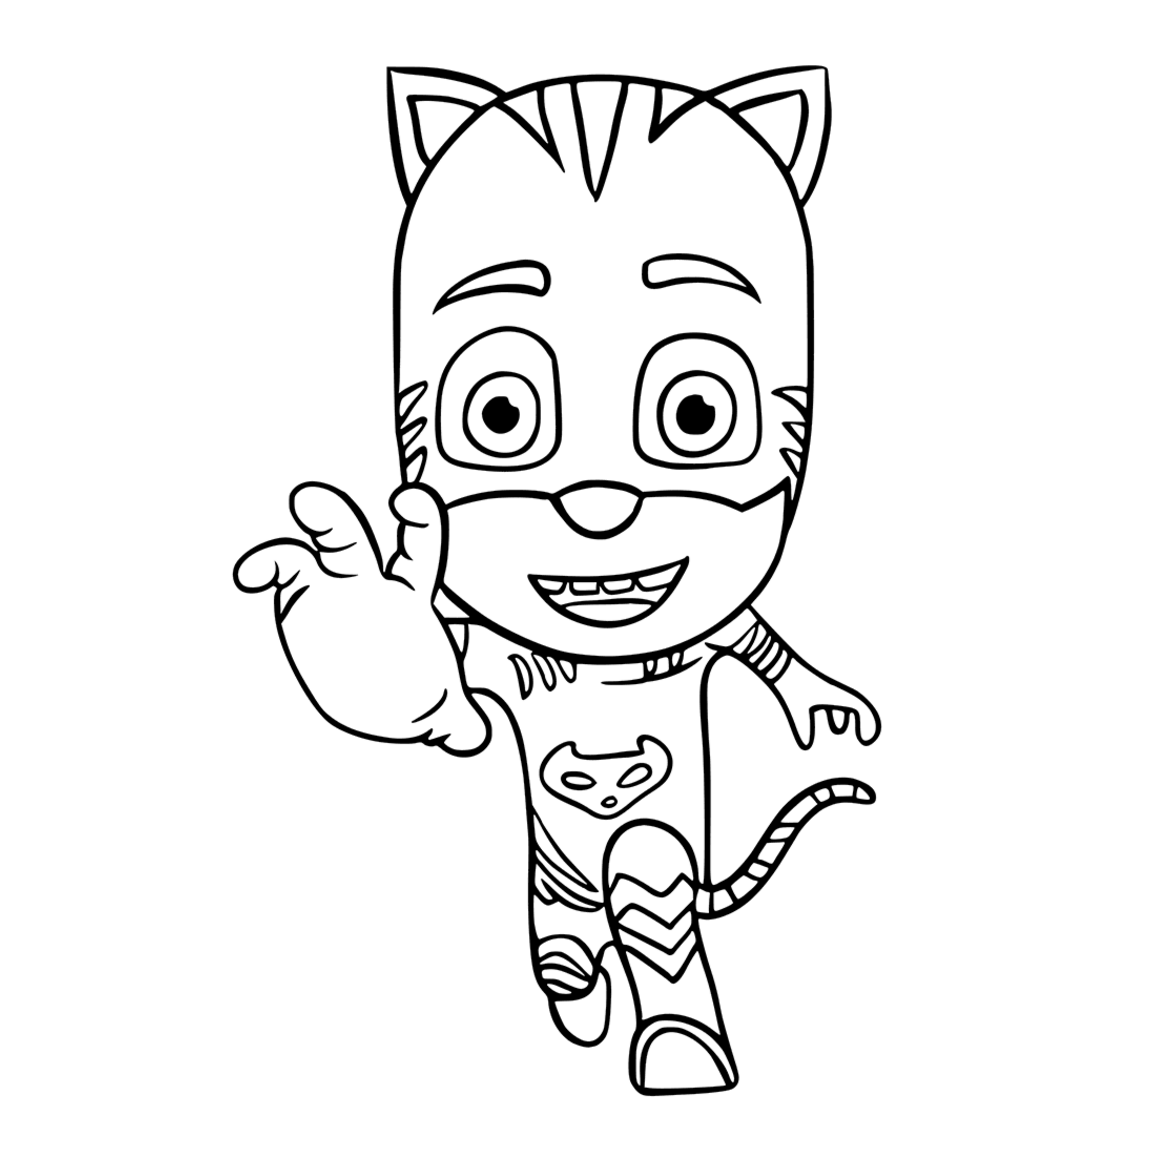 Pj Masks Coloring Pages To Paint Pinterest Pj Mask Pj Masks